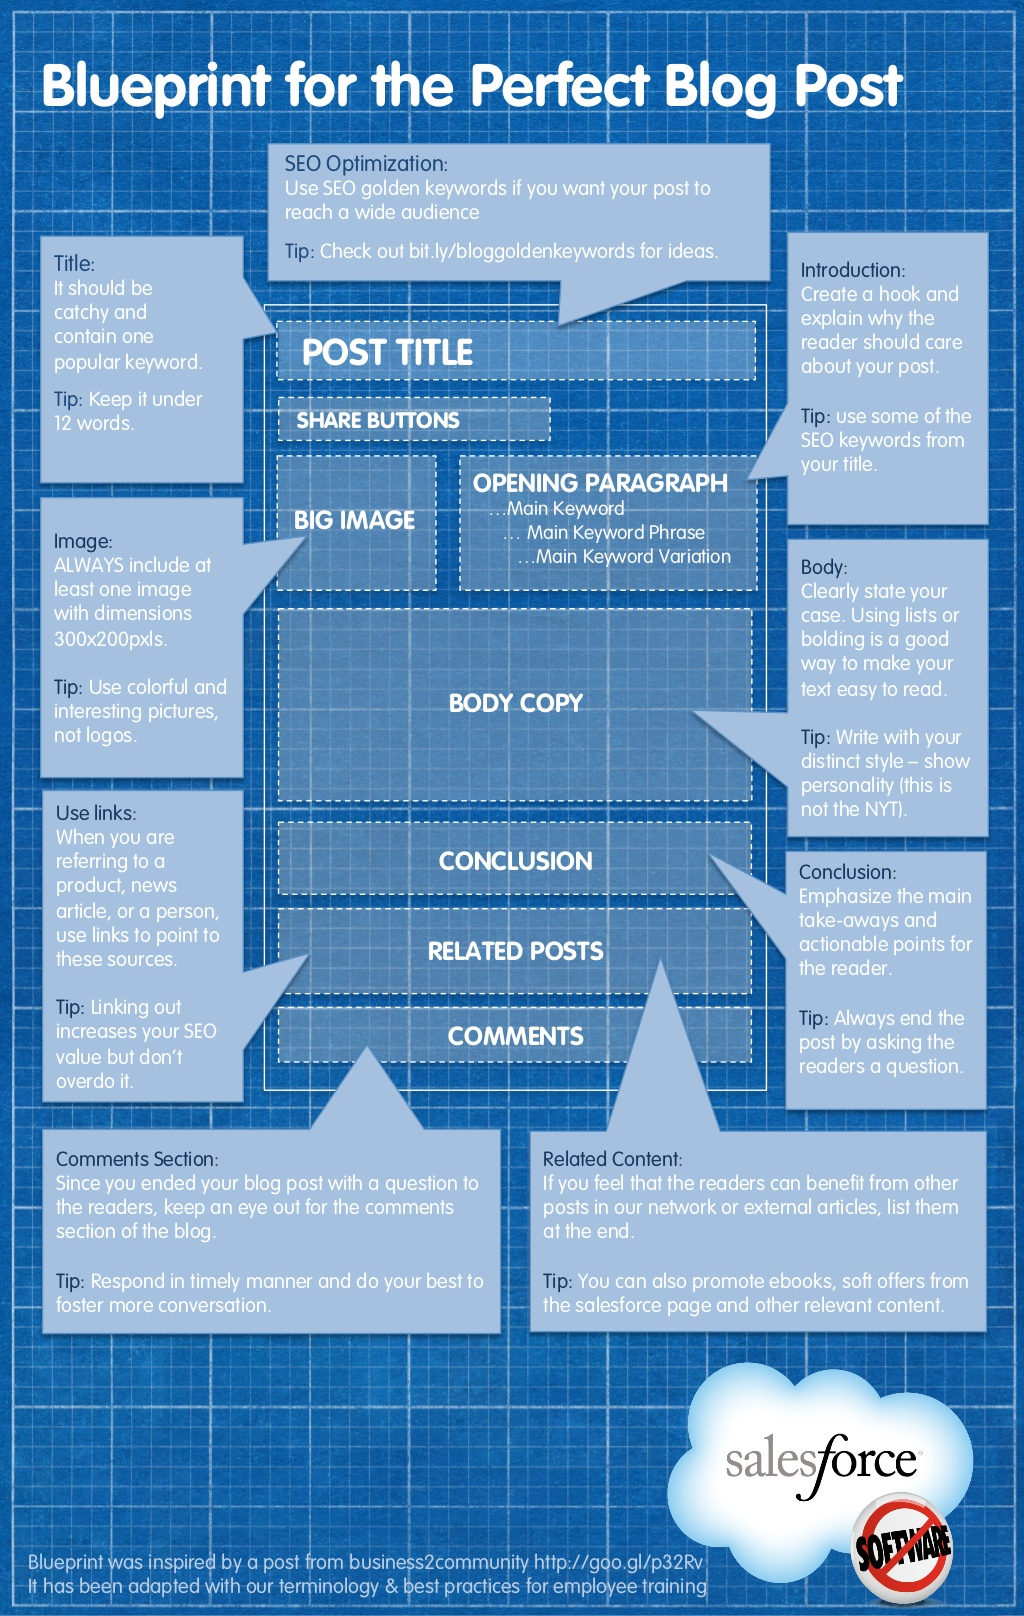 https://i0.wp.com/4.bp.blogspot.com/-x6ZfT9Btj88/VWCEh2wxerI/AAAAAAAAzcI/QyJ5dfpCQxI/s0/blueprints-for-perfect-blog-posts-infographic.jpg?resize=960%2C1515